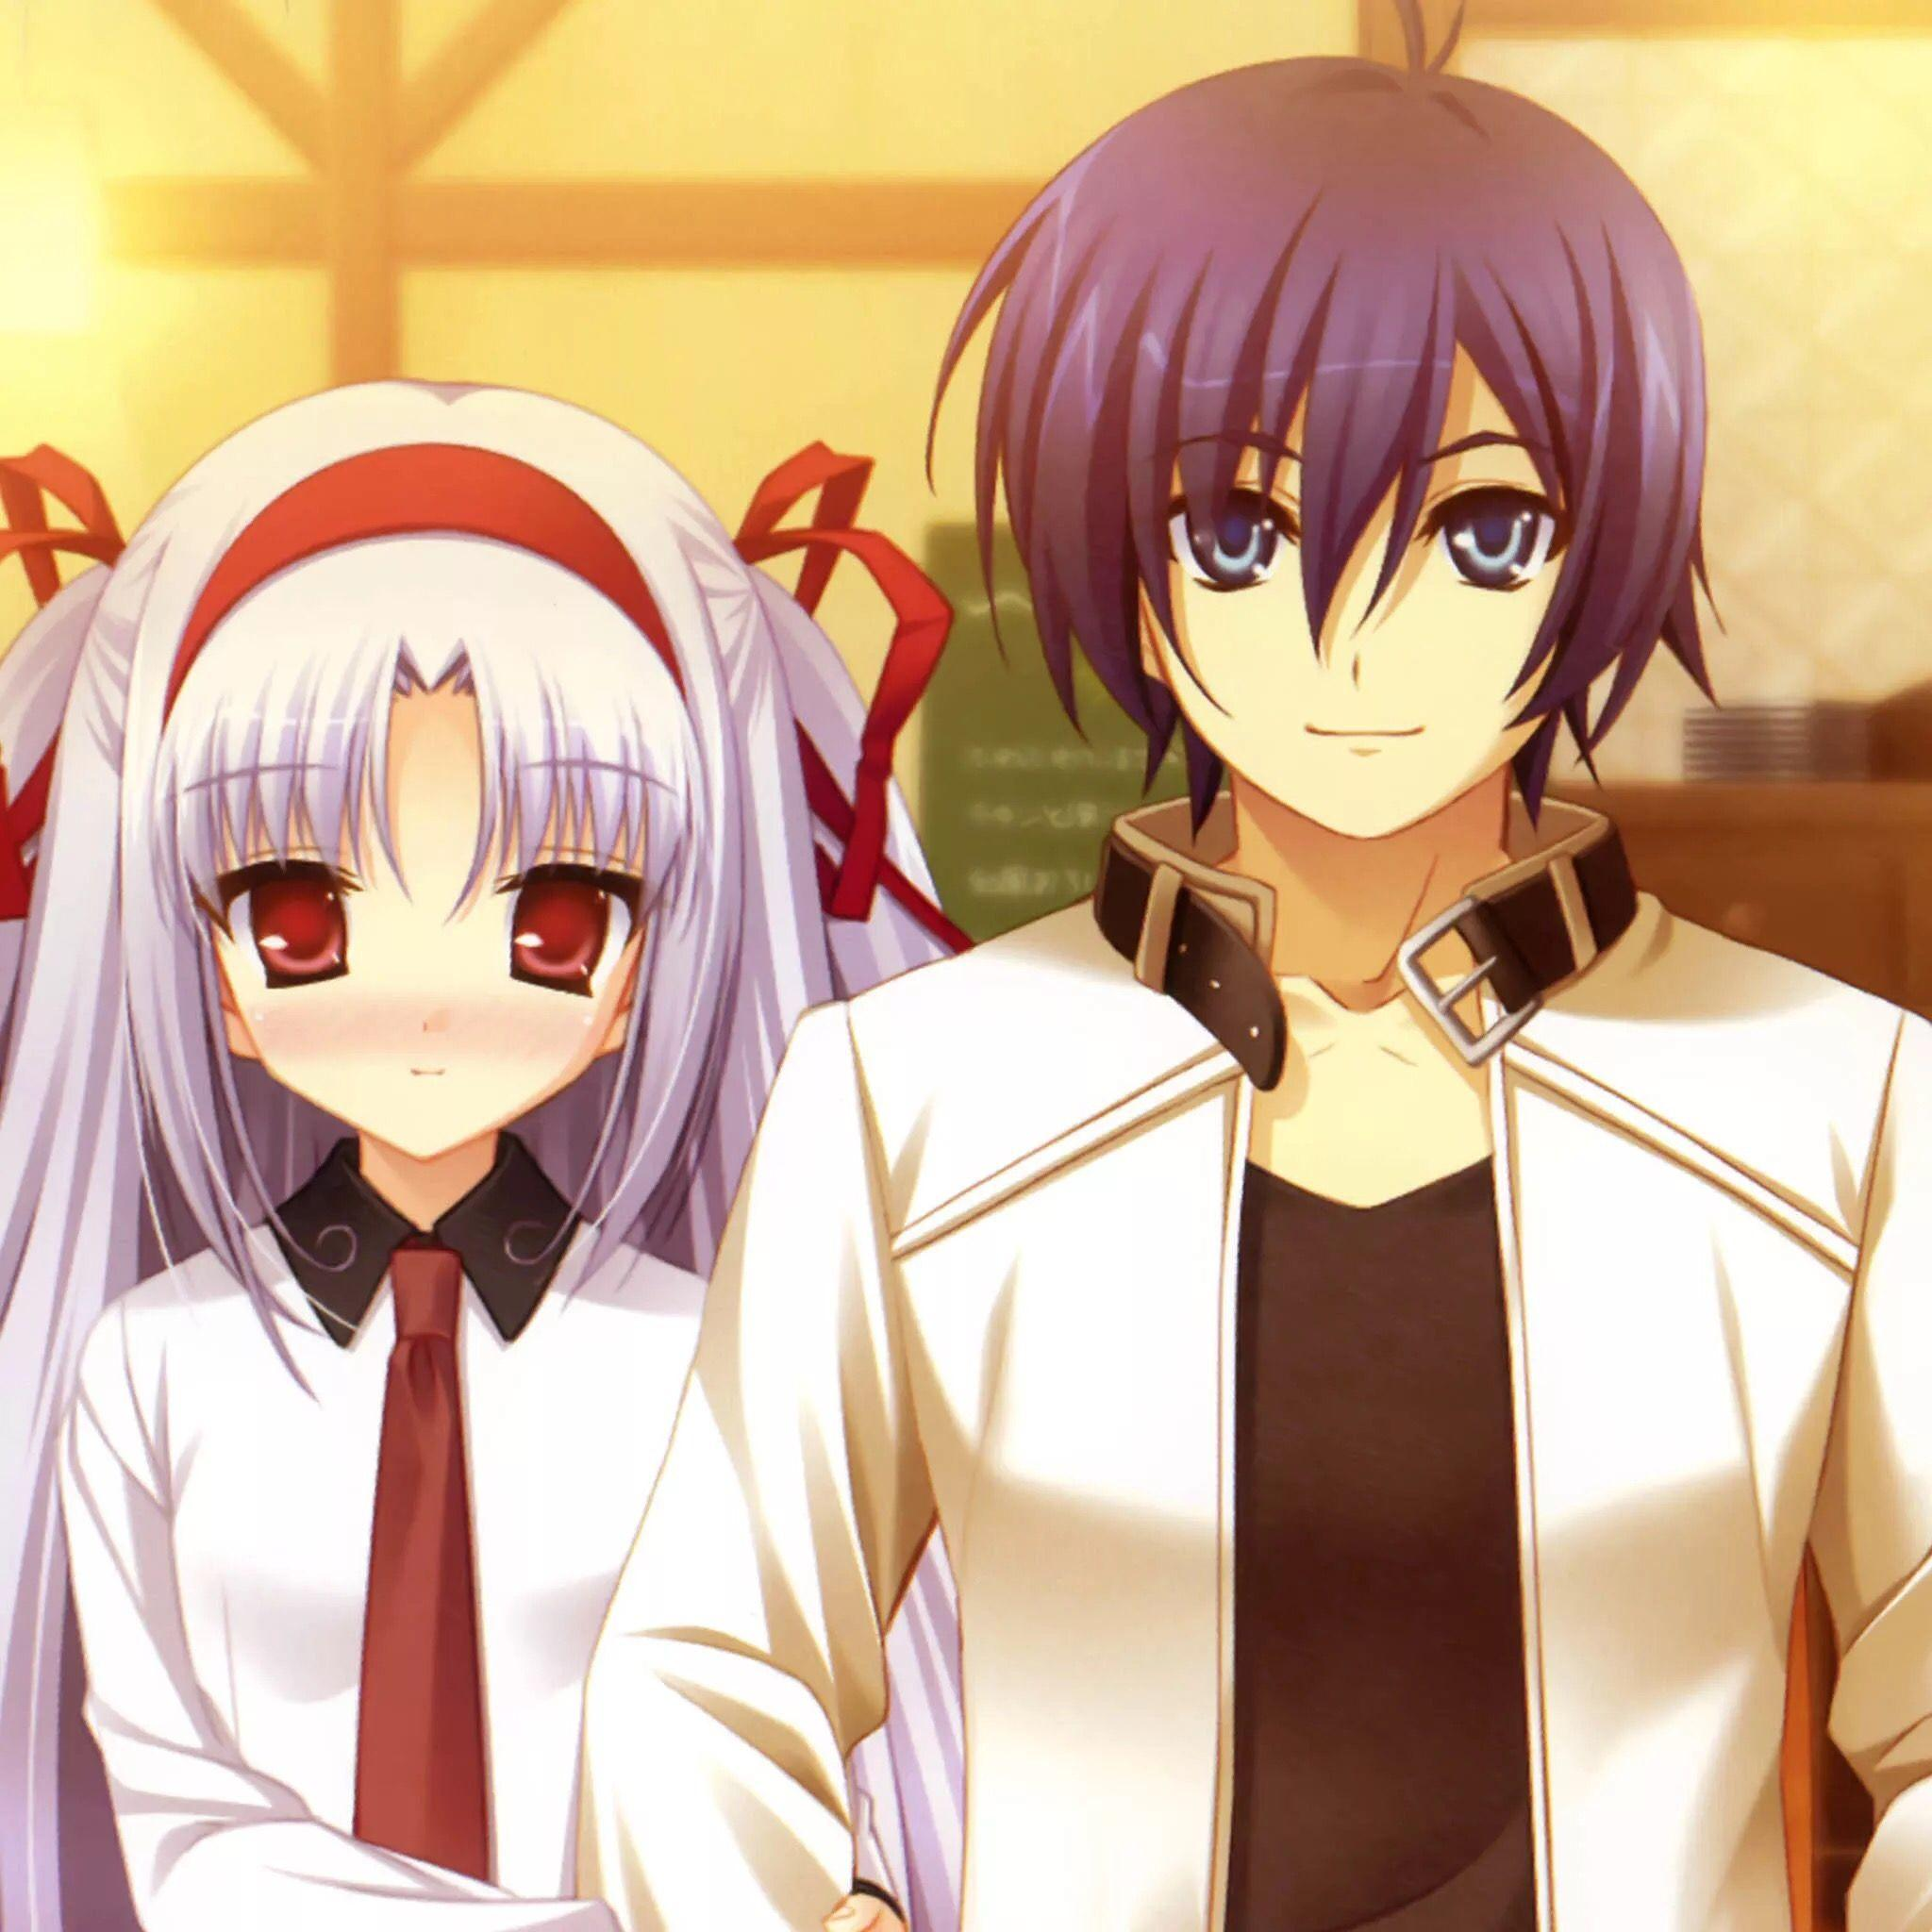 Cute Couple Anime Wallpapers - Wallpaper Cave